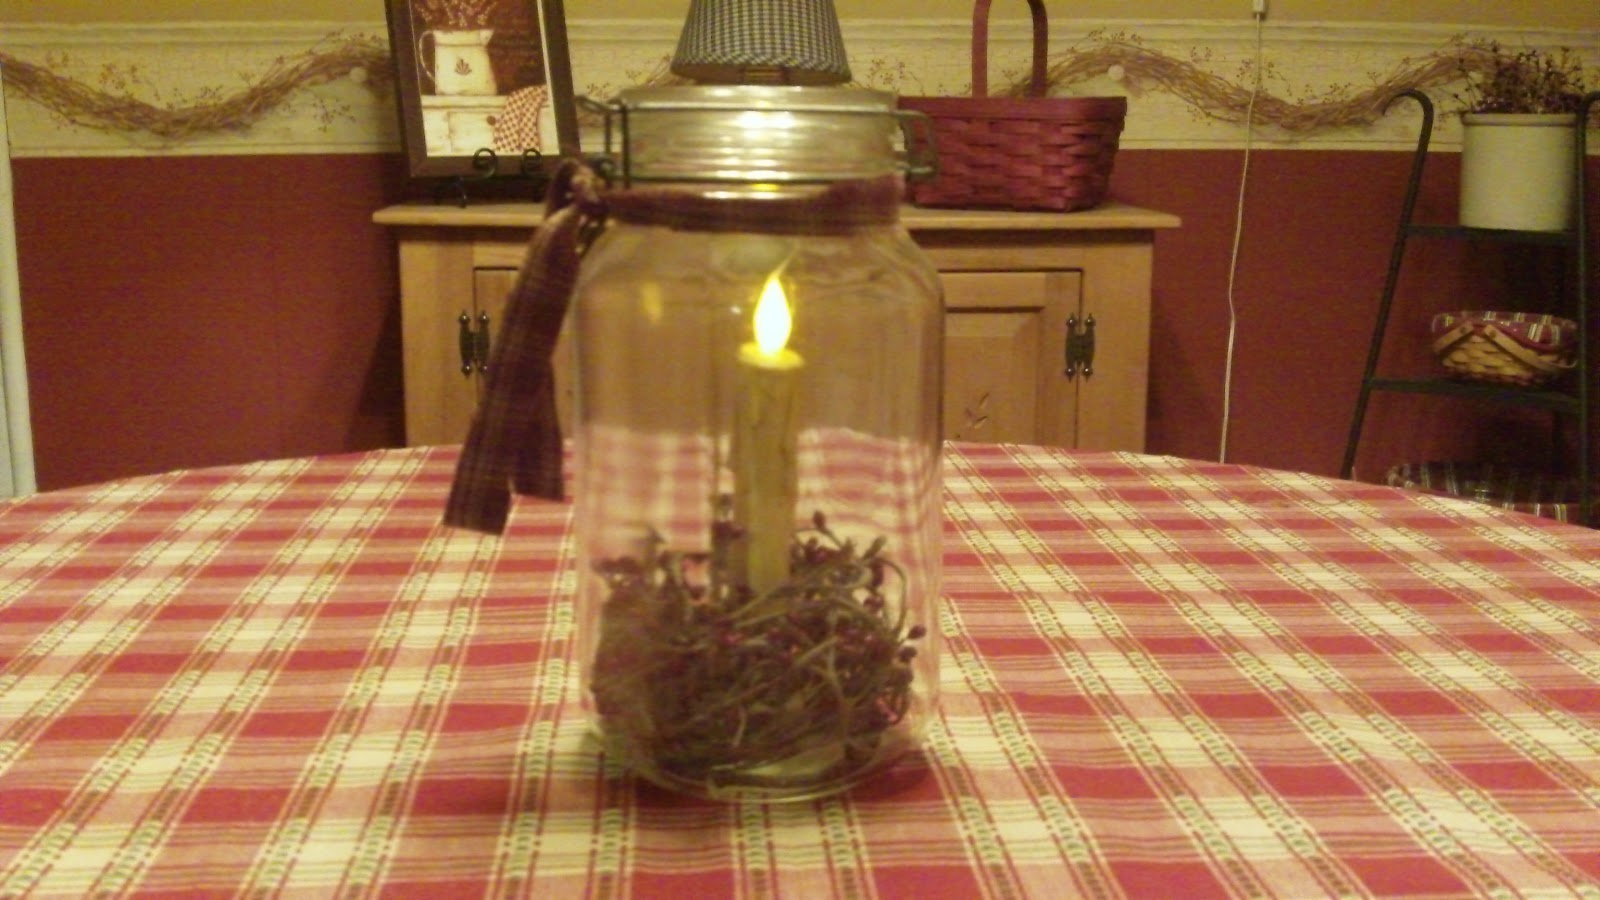 Country home decorating ideas country canning jar idea for Country home decorating ideas pinterest